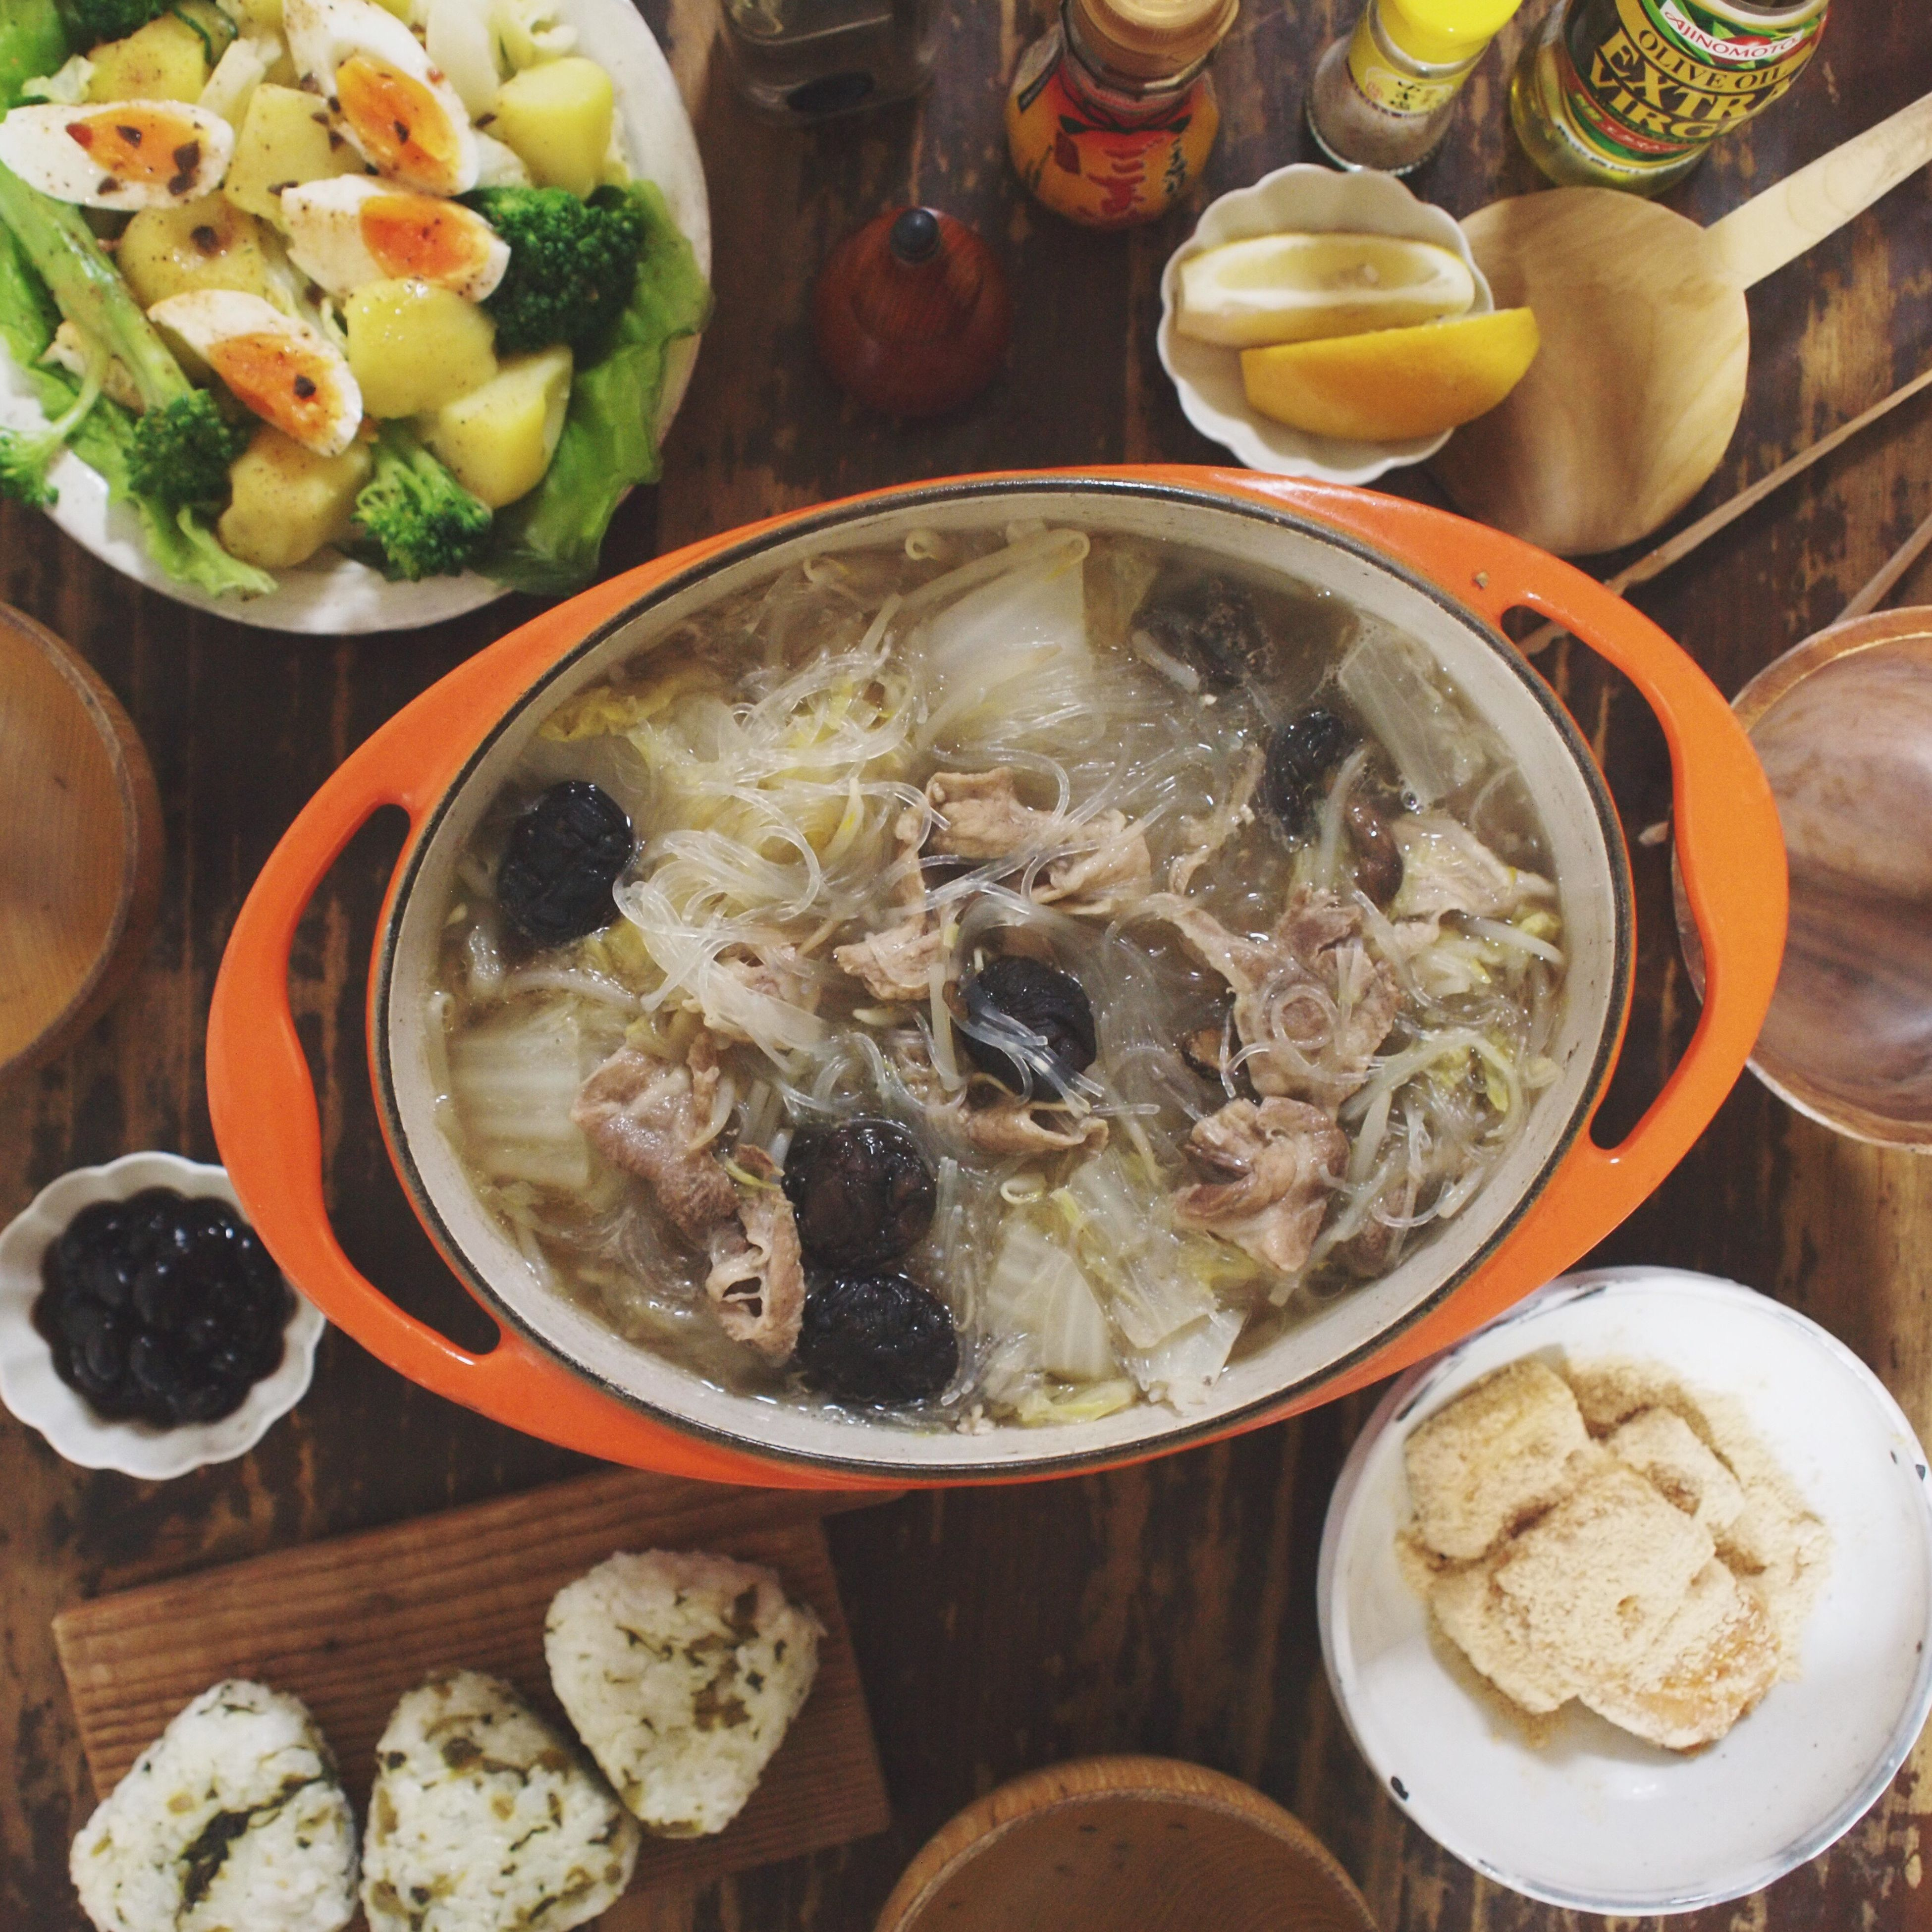 food and drink, food, freshness, indoors, bowl, ready-to-eat, healthy eating, meal, table, plate, still life, soup, high angle view, serving size, spoon, directly above, noodles, close-up, meat, chopsticks